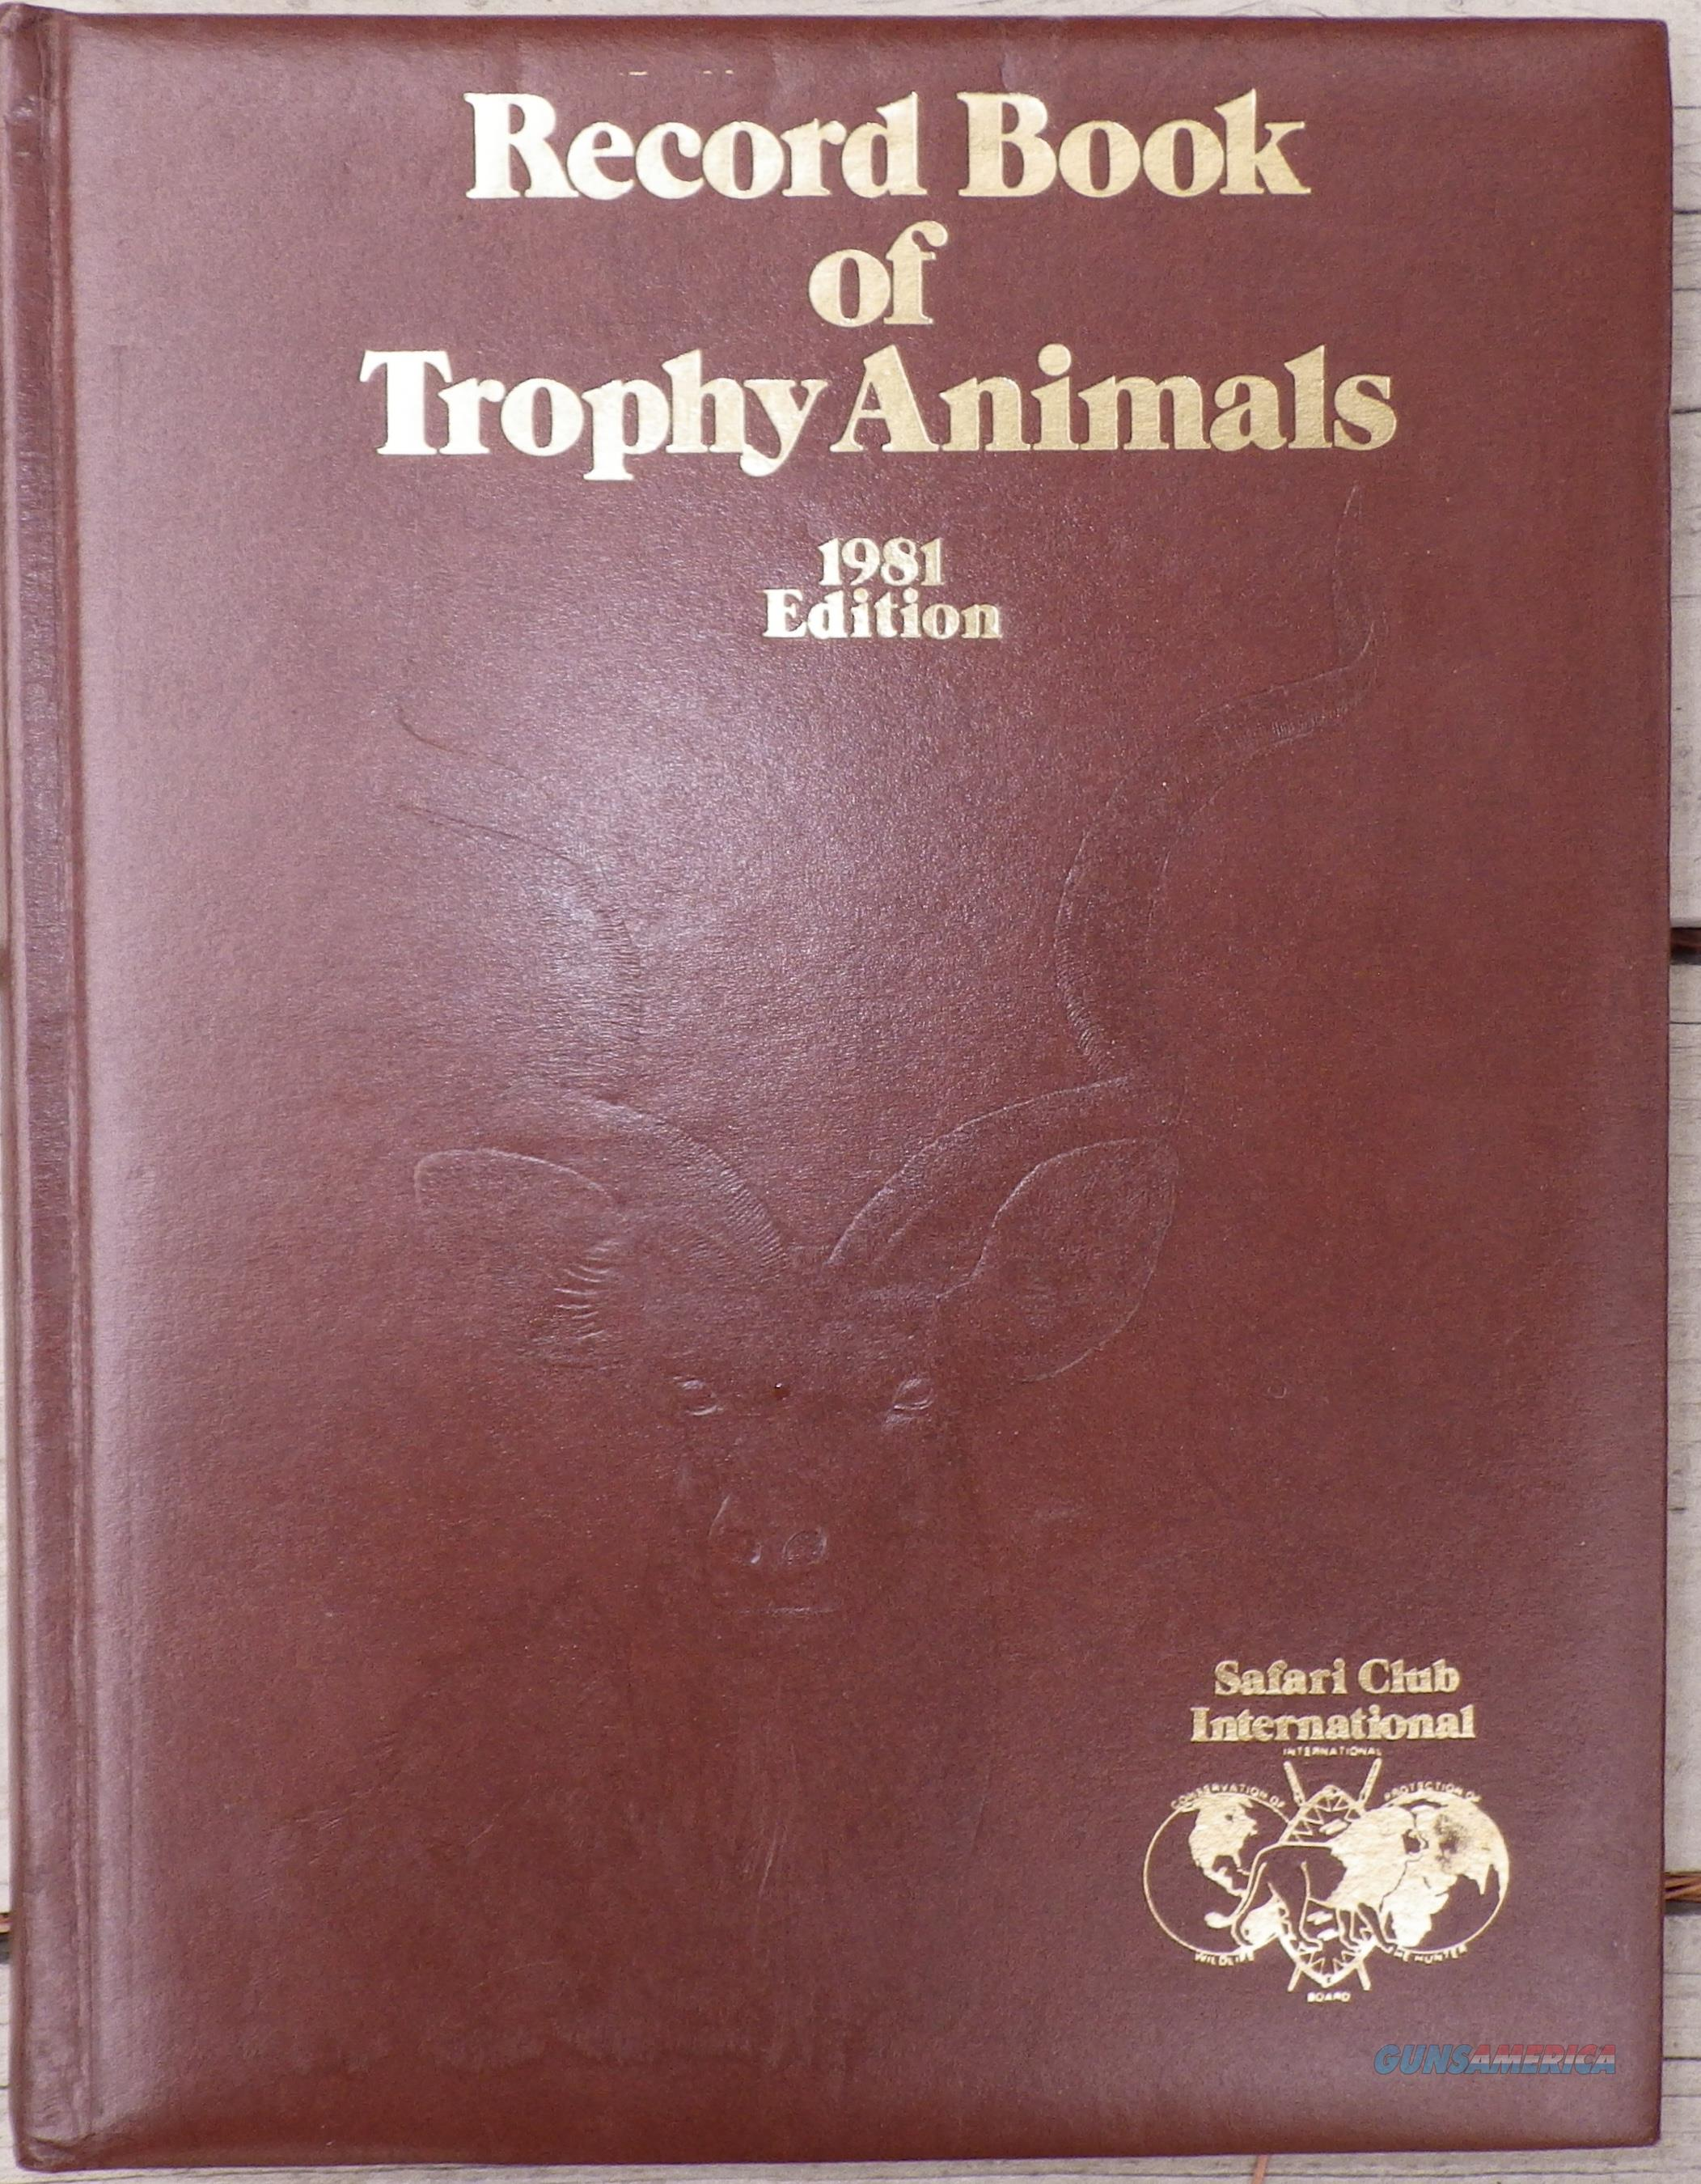 Safari Club International Record Book of Trophy Animals, Limited 1981 edition  Non-Guns > Books & Magazines